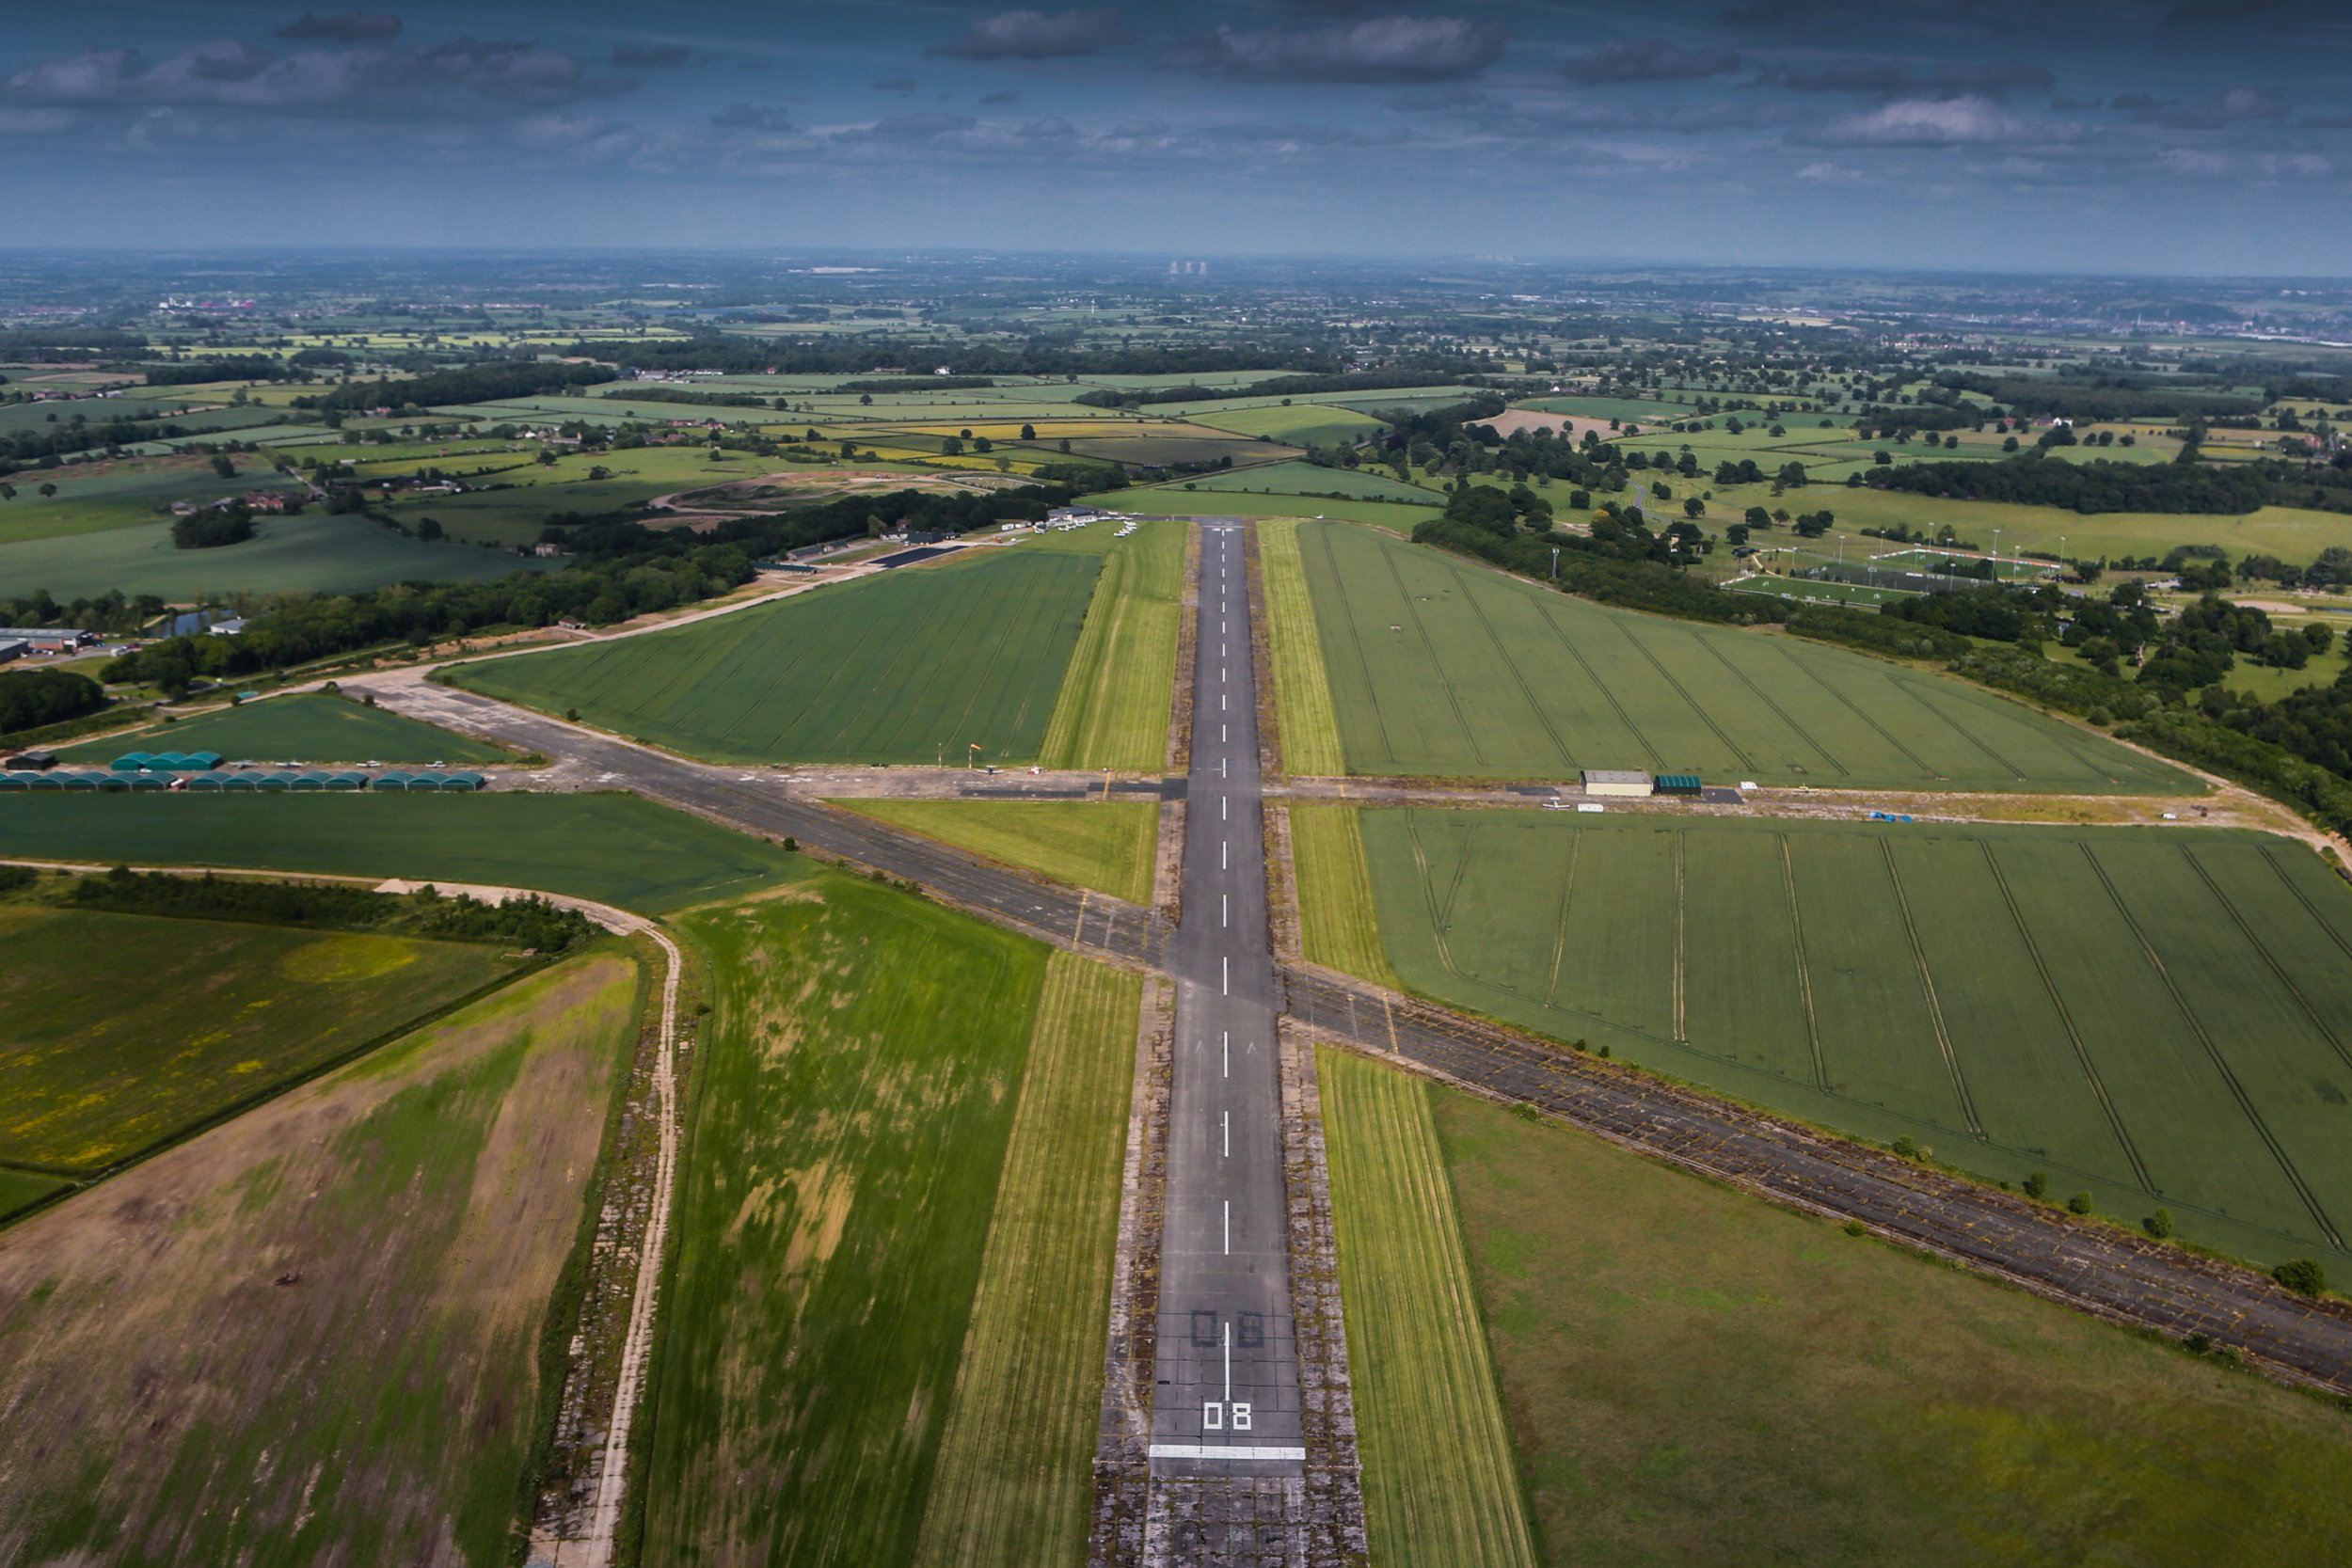 STAFFORDSHIRE, ENGLAND. JUNE 18. An aerial view of Tatenhill Airfield, Staffordshire on June 18, 2015. (Photograph by David Goddard/Getty Images)